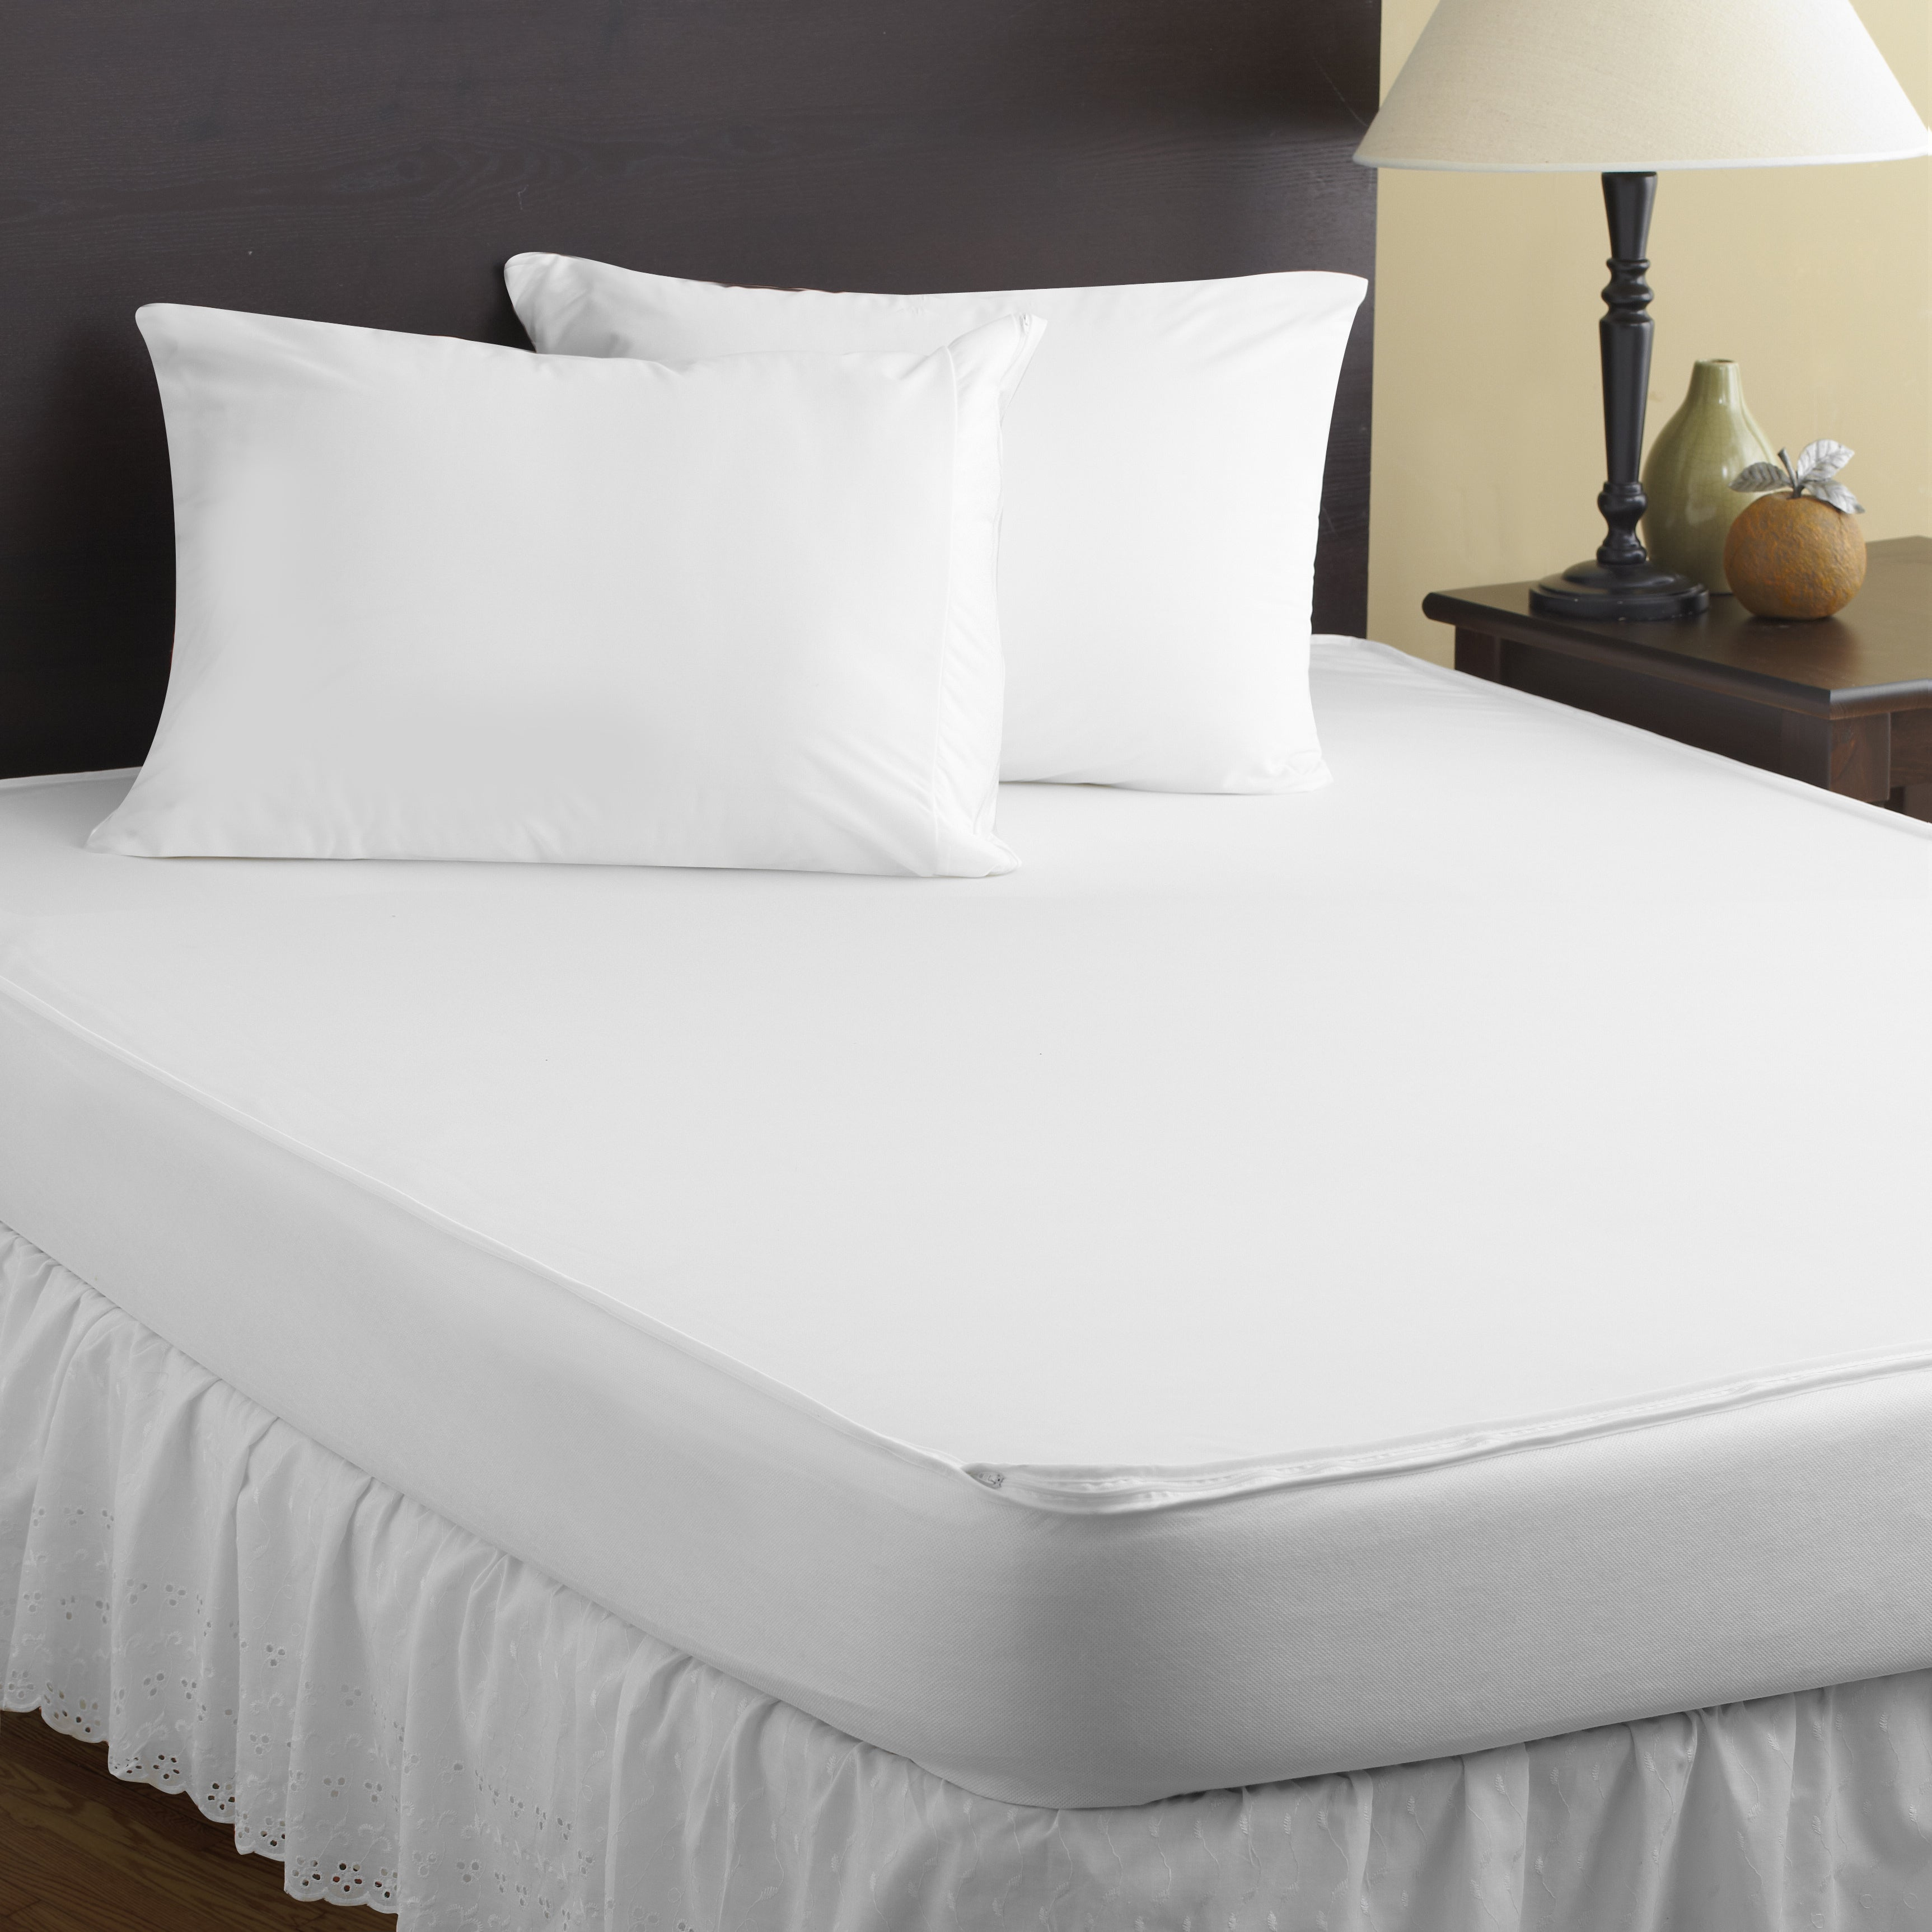 Overstock.com PureCare Aromatherapy Total Encasement Mattress Protector